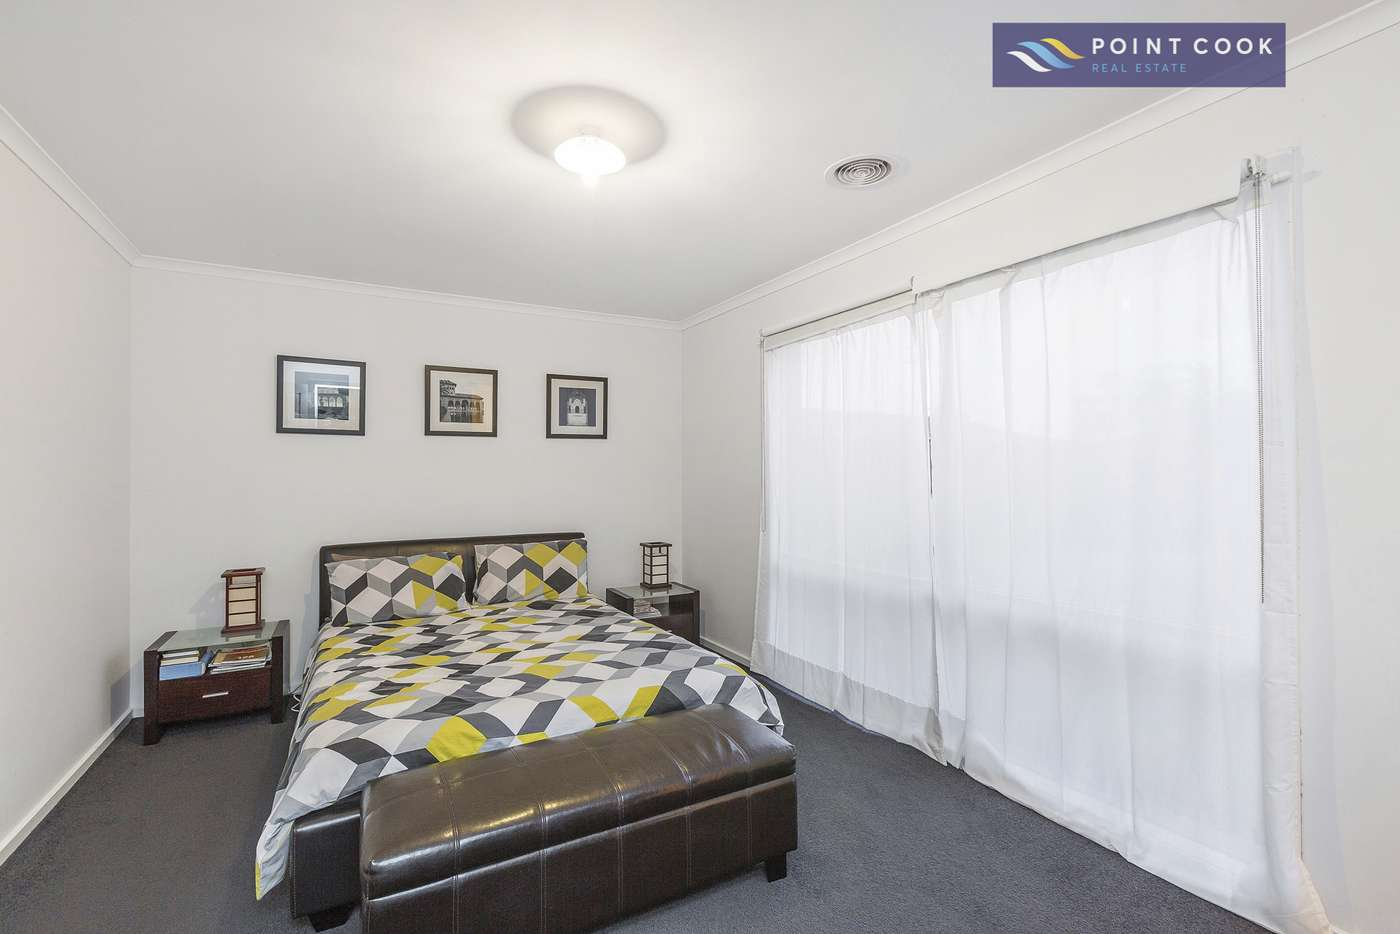 Sixth view of Homely house listing, 24 Caldicott Crescent, Point Cook VIC 3030